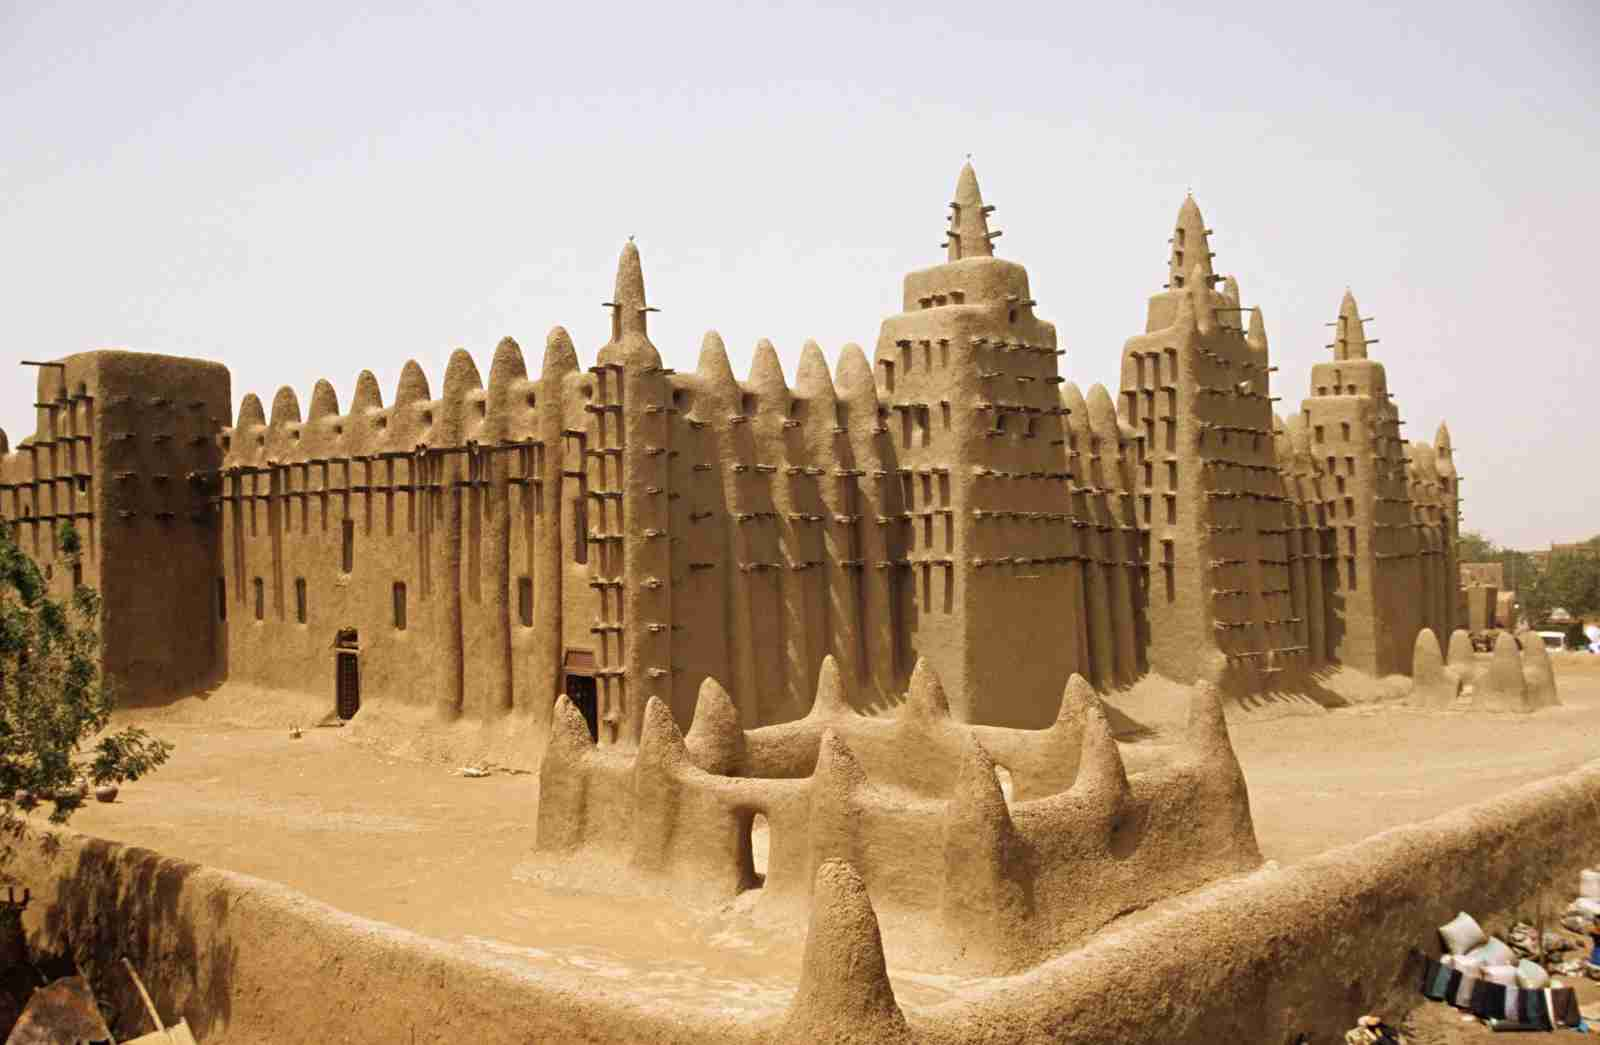 The Grande Mosque Djenné. (Photo by Image Source / Getty Images)